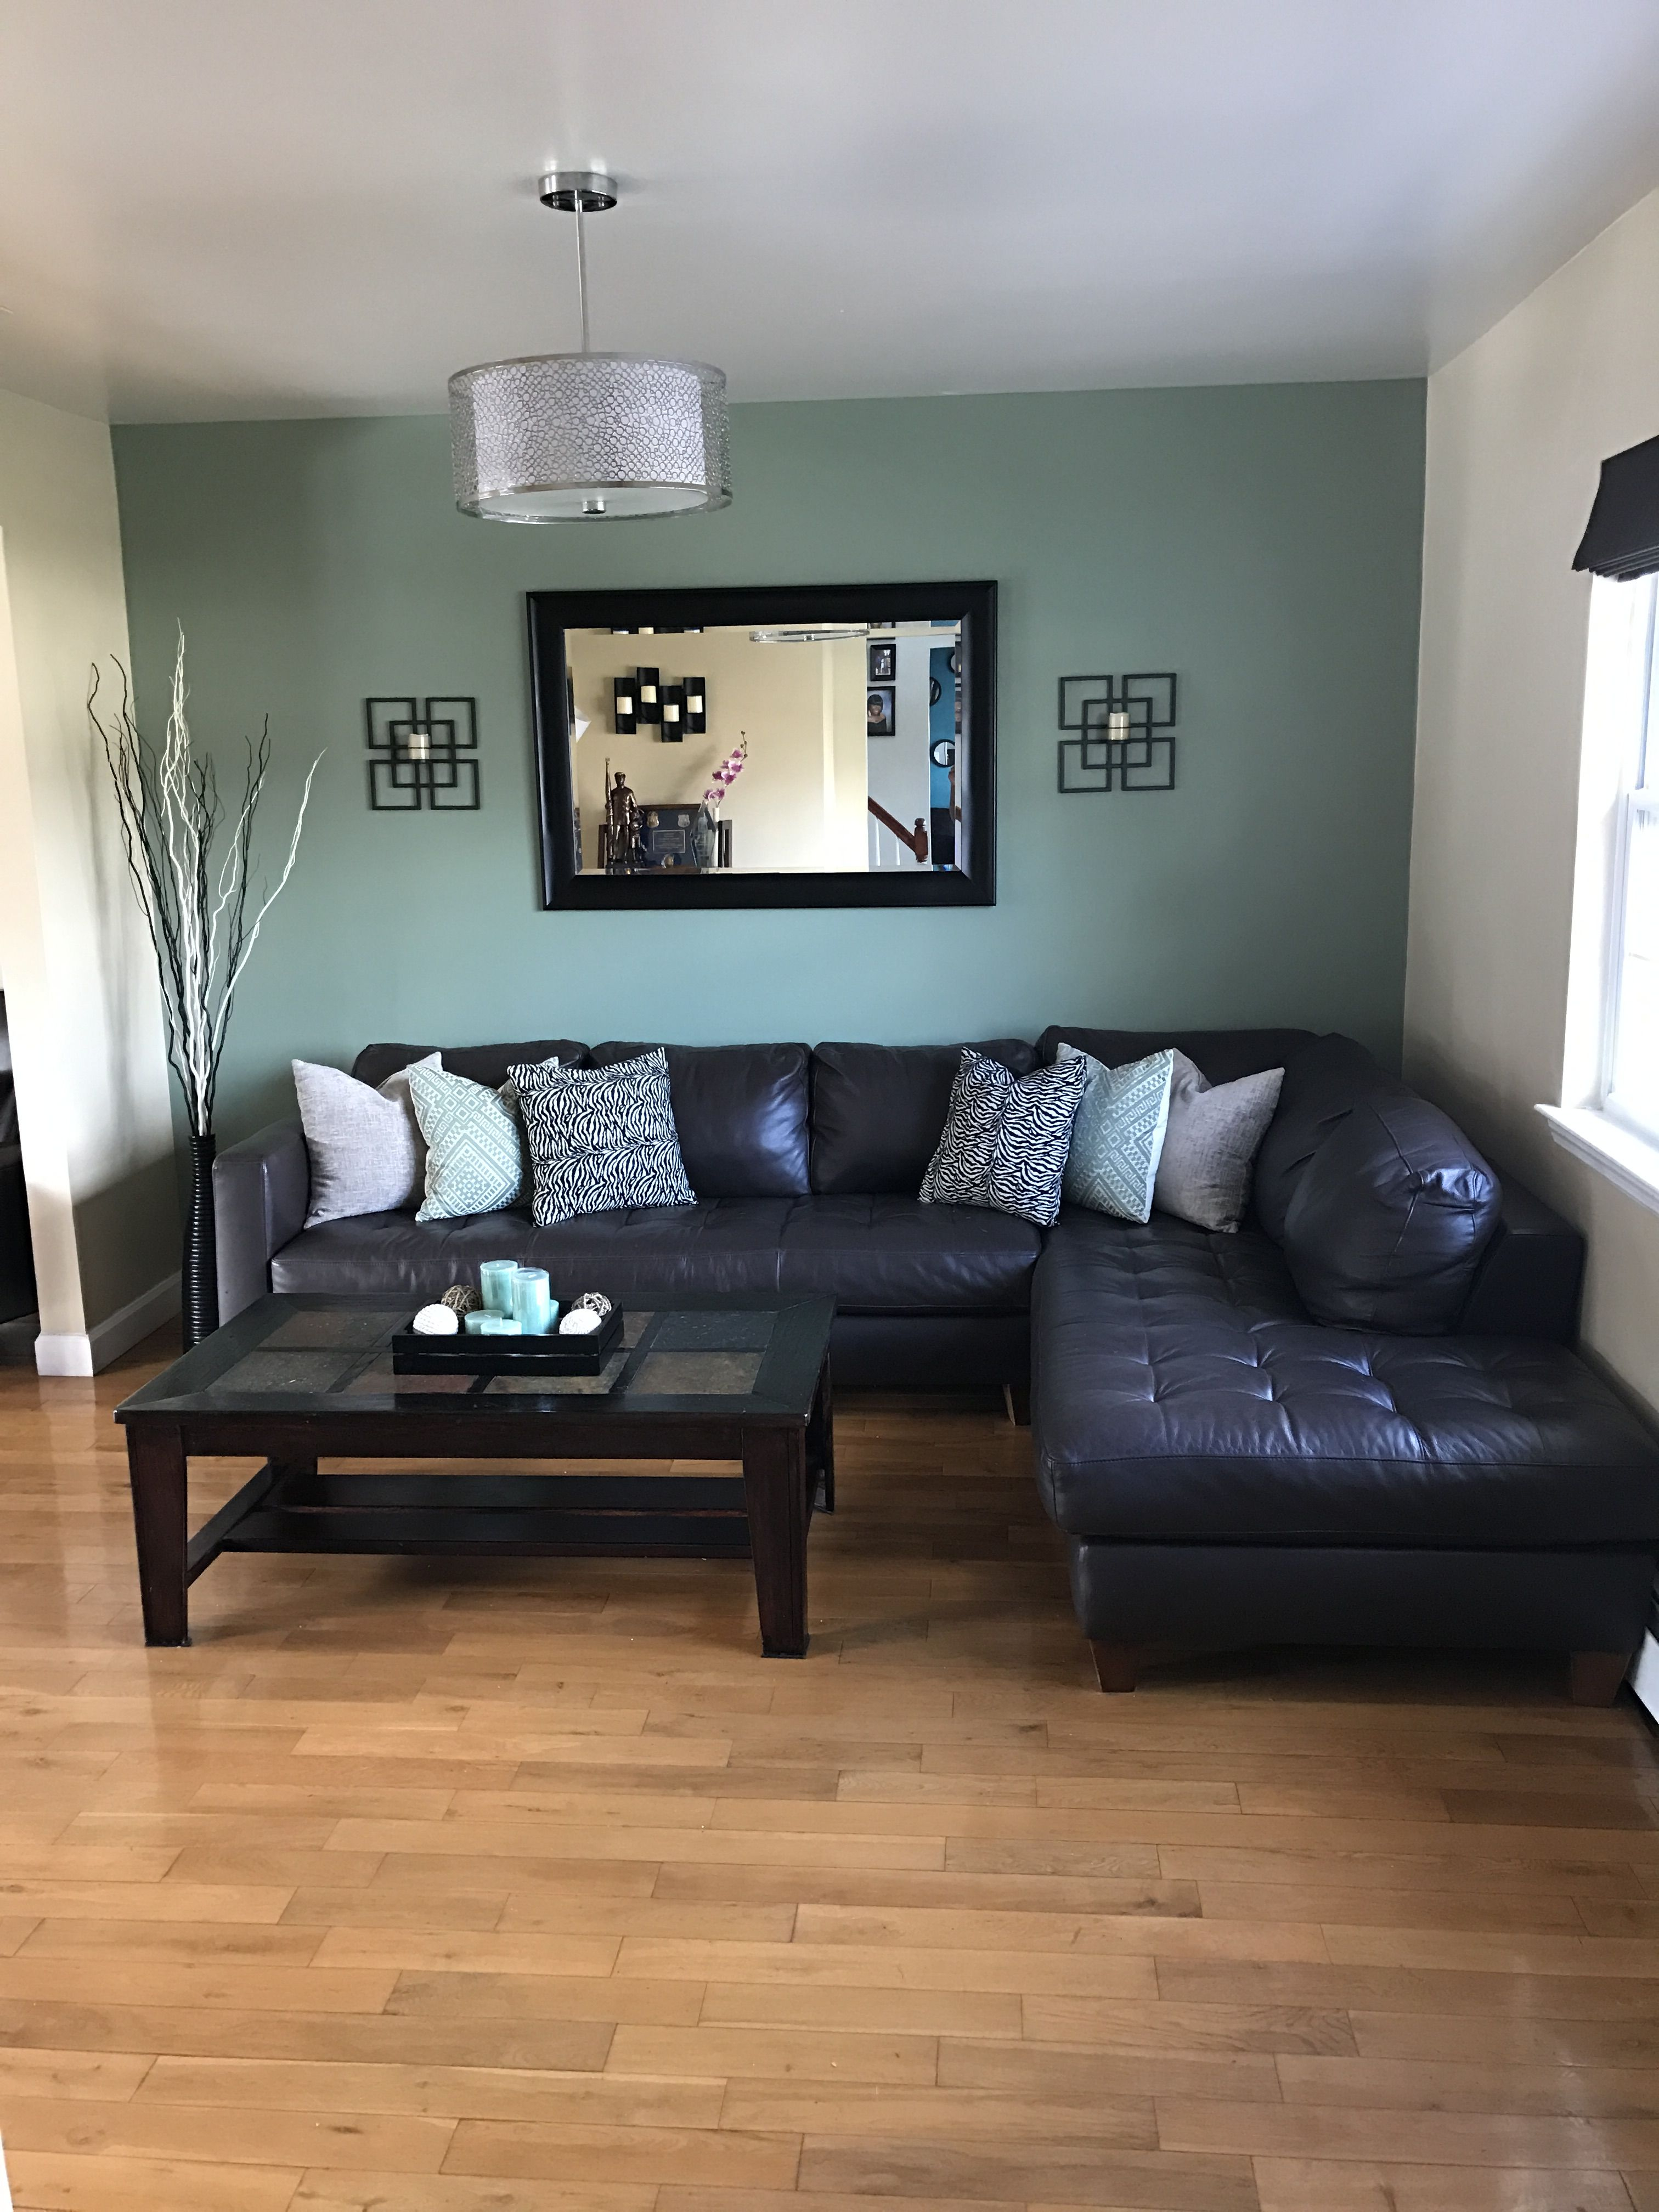 Dark brown sectional looks great with sage green accent wall